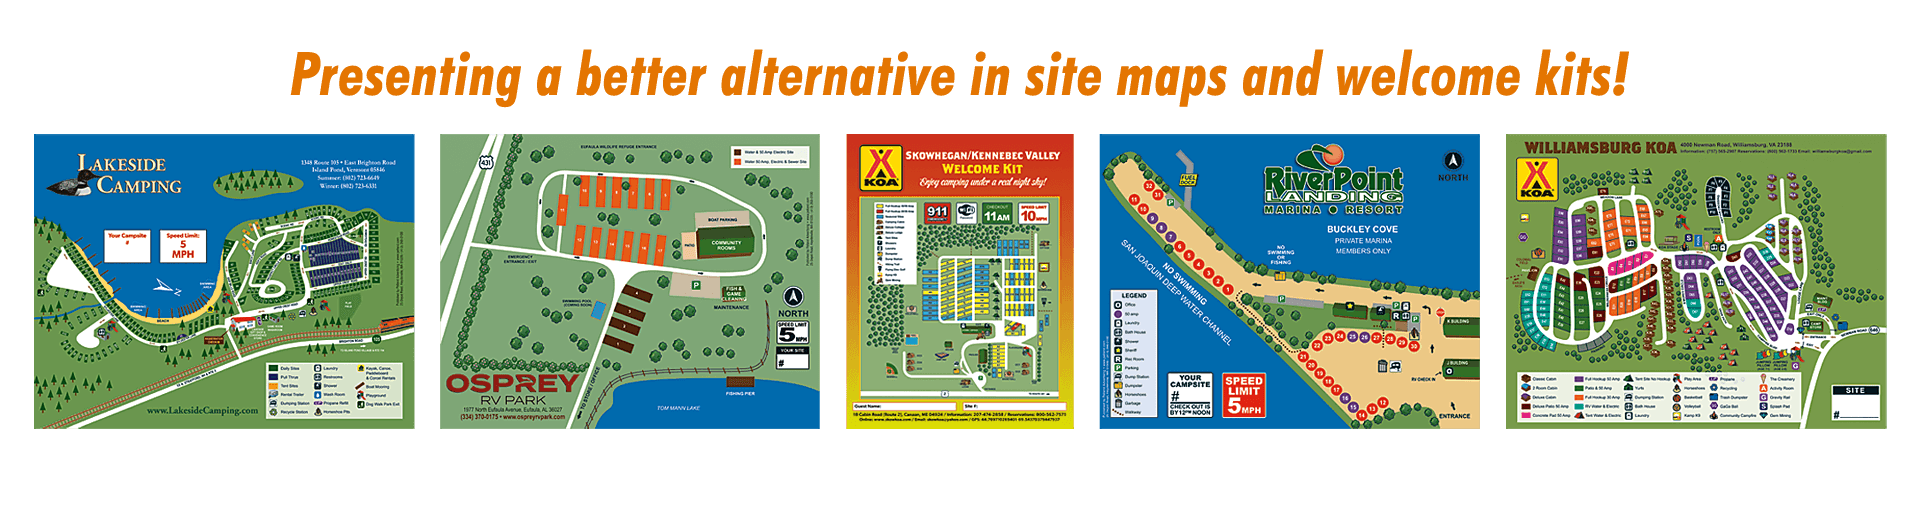 Site Maps